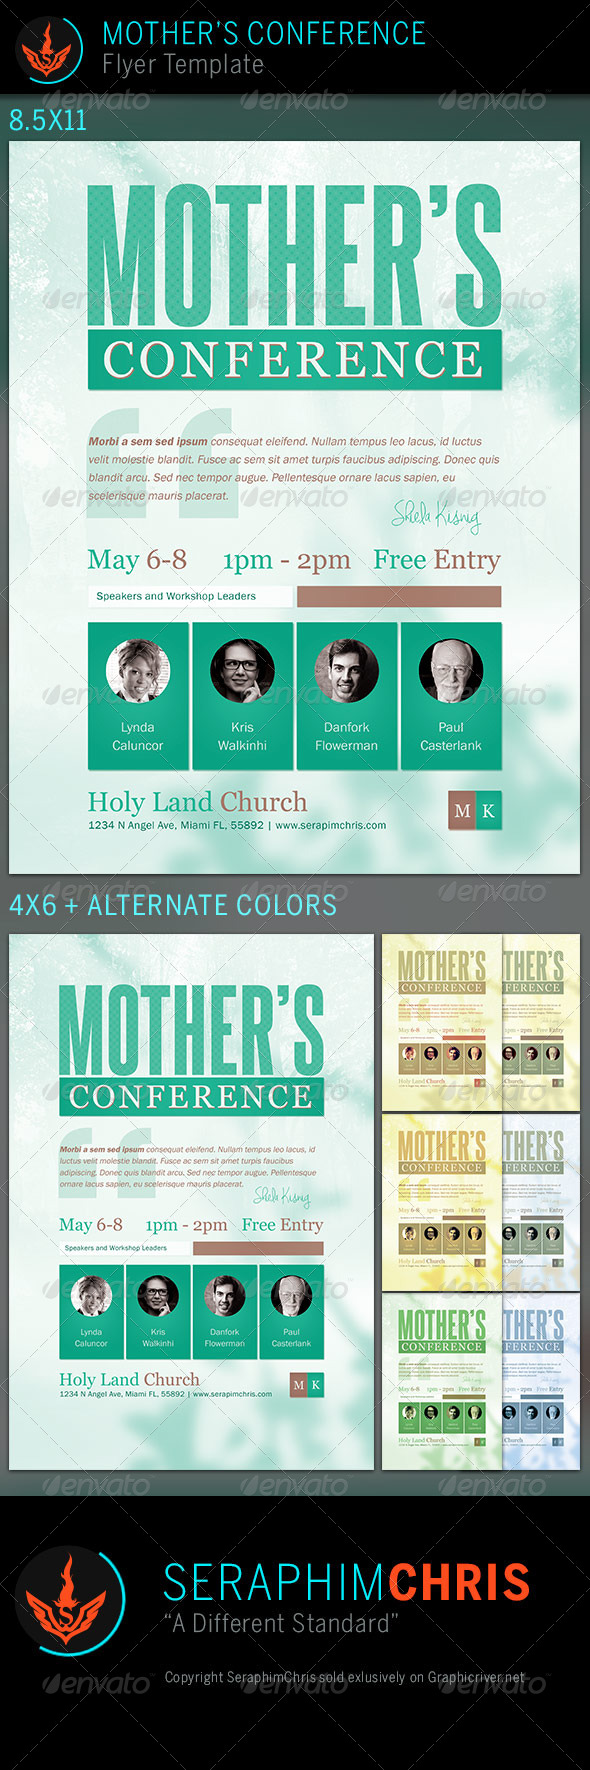 Mother s Conference Church Flyer Template